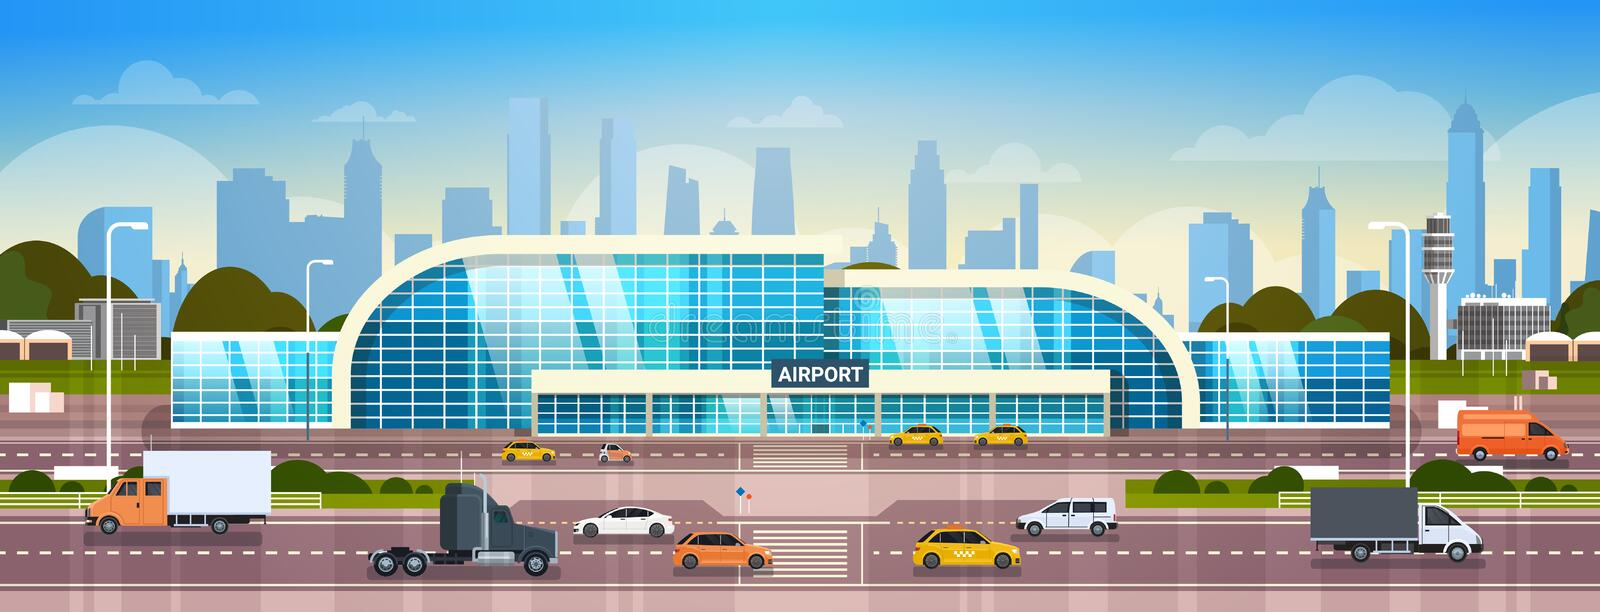 Airport Building Exterior Modern Terminal With Cars On High Way Road And Skyscrapers On Background Horizontal Banner vector illustration